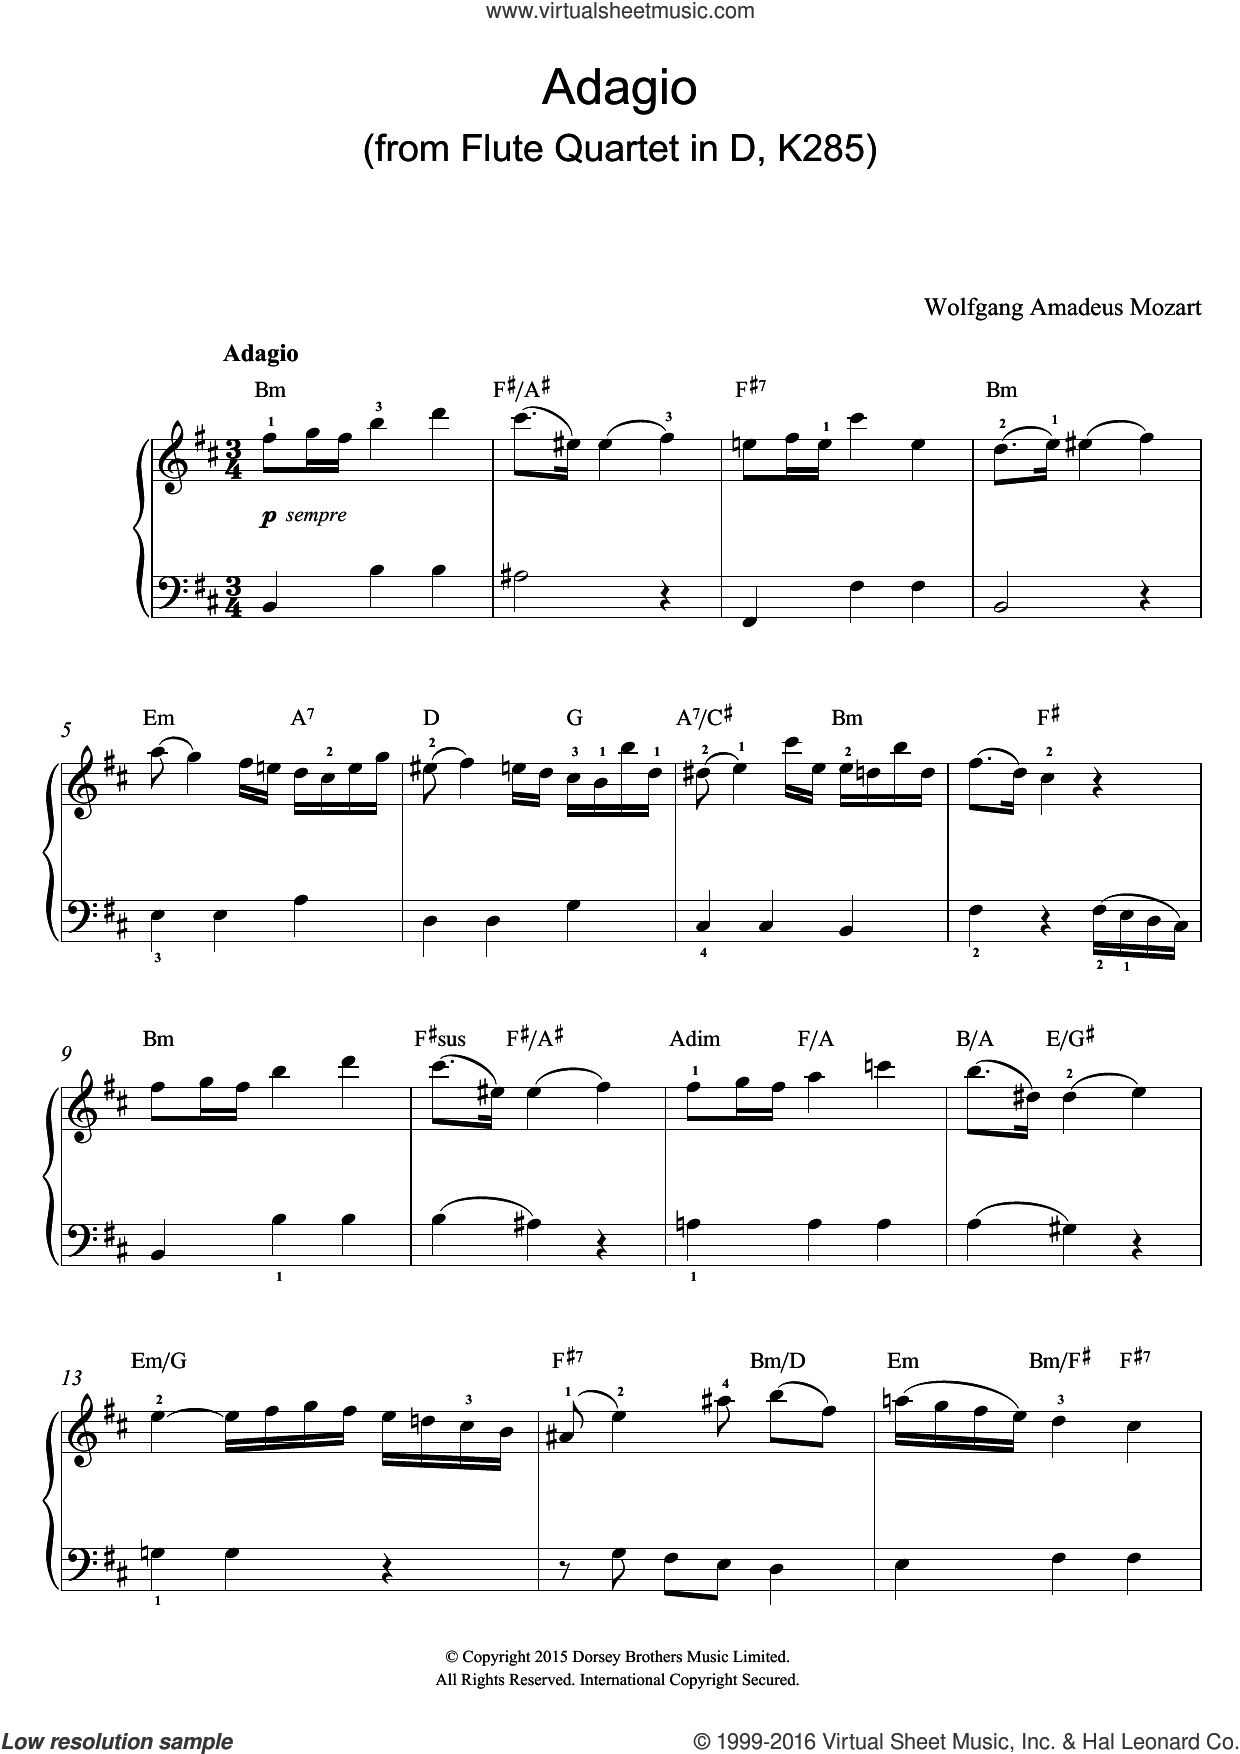 Adagio (from Flute Quartet In D, K285) sheet music for voice, piano or guitar by Wolfgang Amadeus Mozart, classical score, intermediate. Score Image Preview.